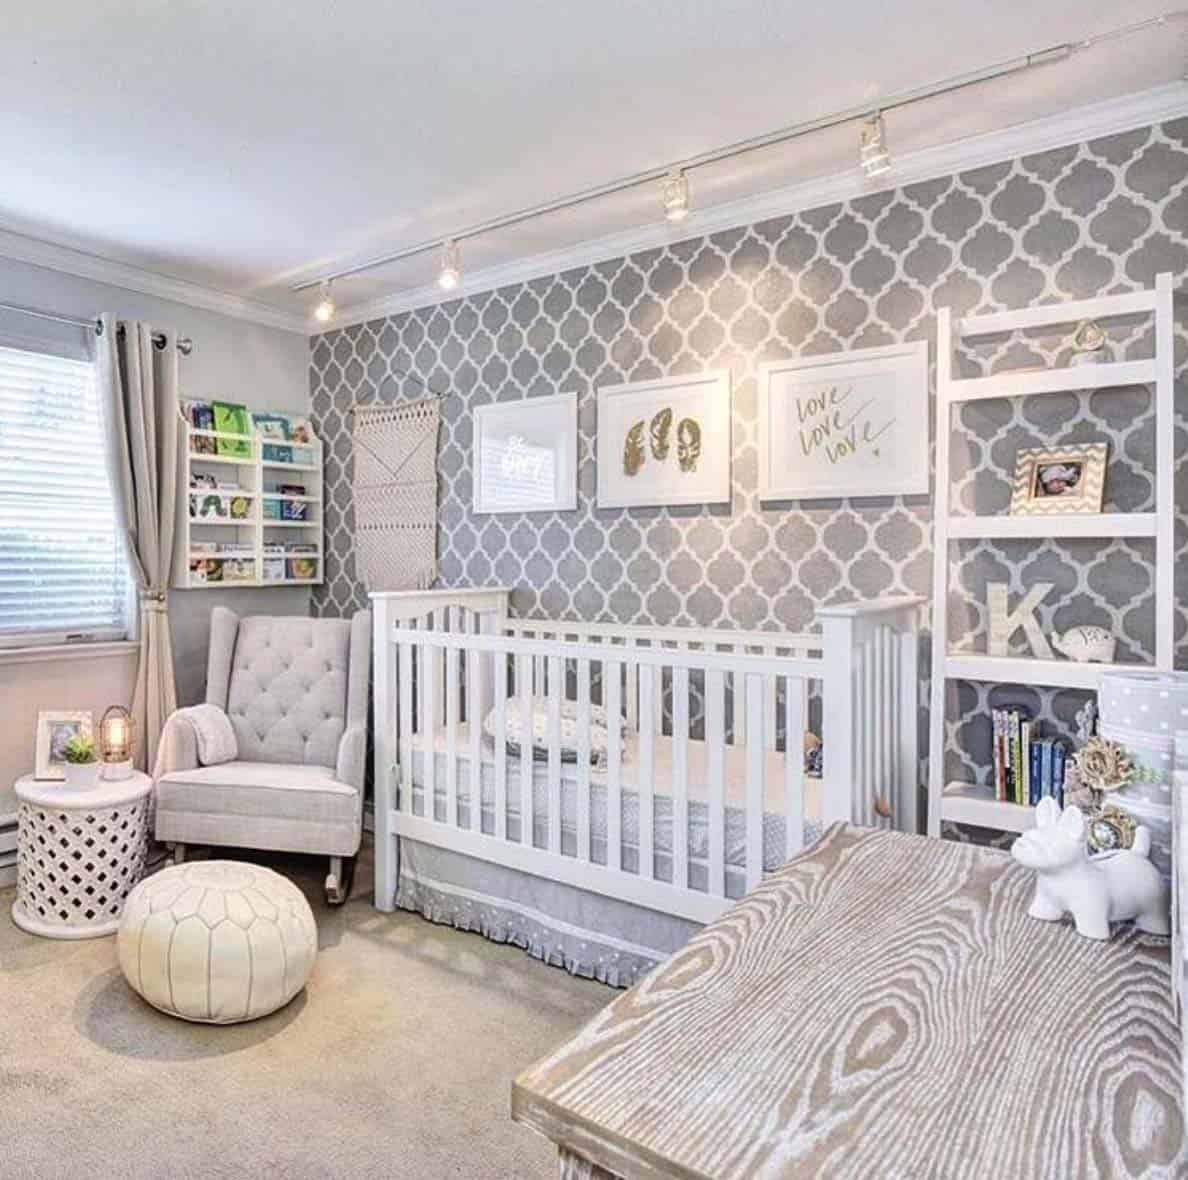 Stylish Nursery Decorating Ideas-36-1 Kindesign